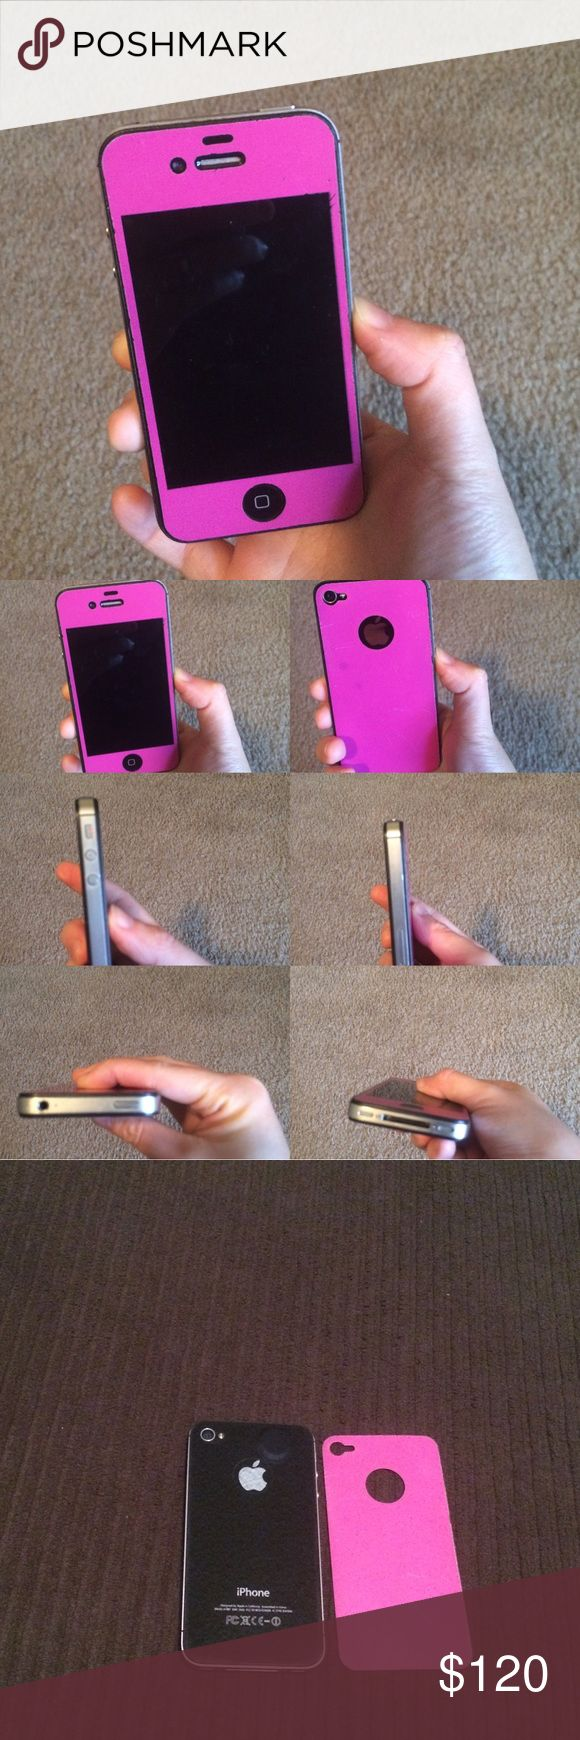 Unlocked iPhone 4S. 32 Gb Unlocked phone. The battery was replaced so it is a practically new battery. Minor scratches on screen and on back but no dents! Still works great! Apple Other